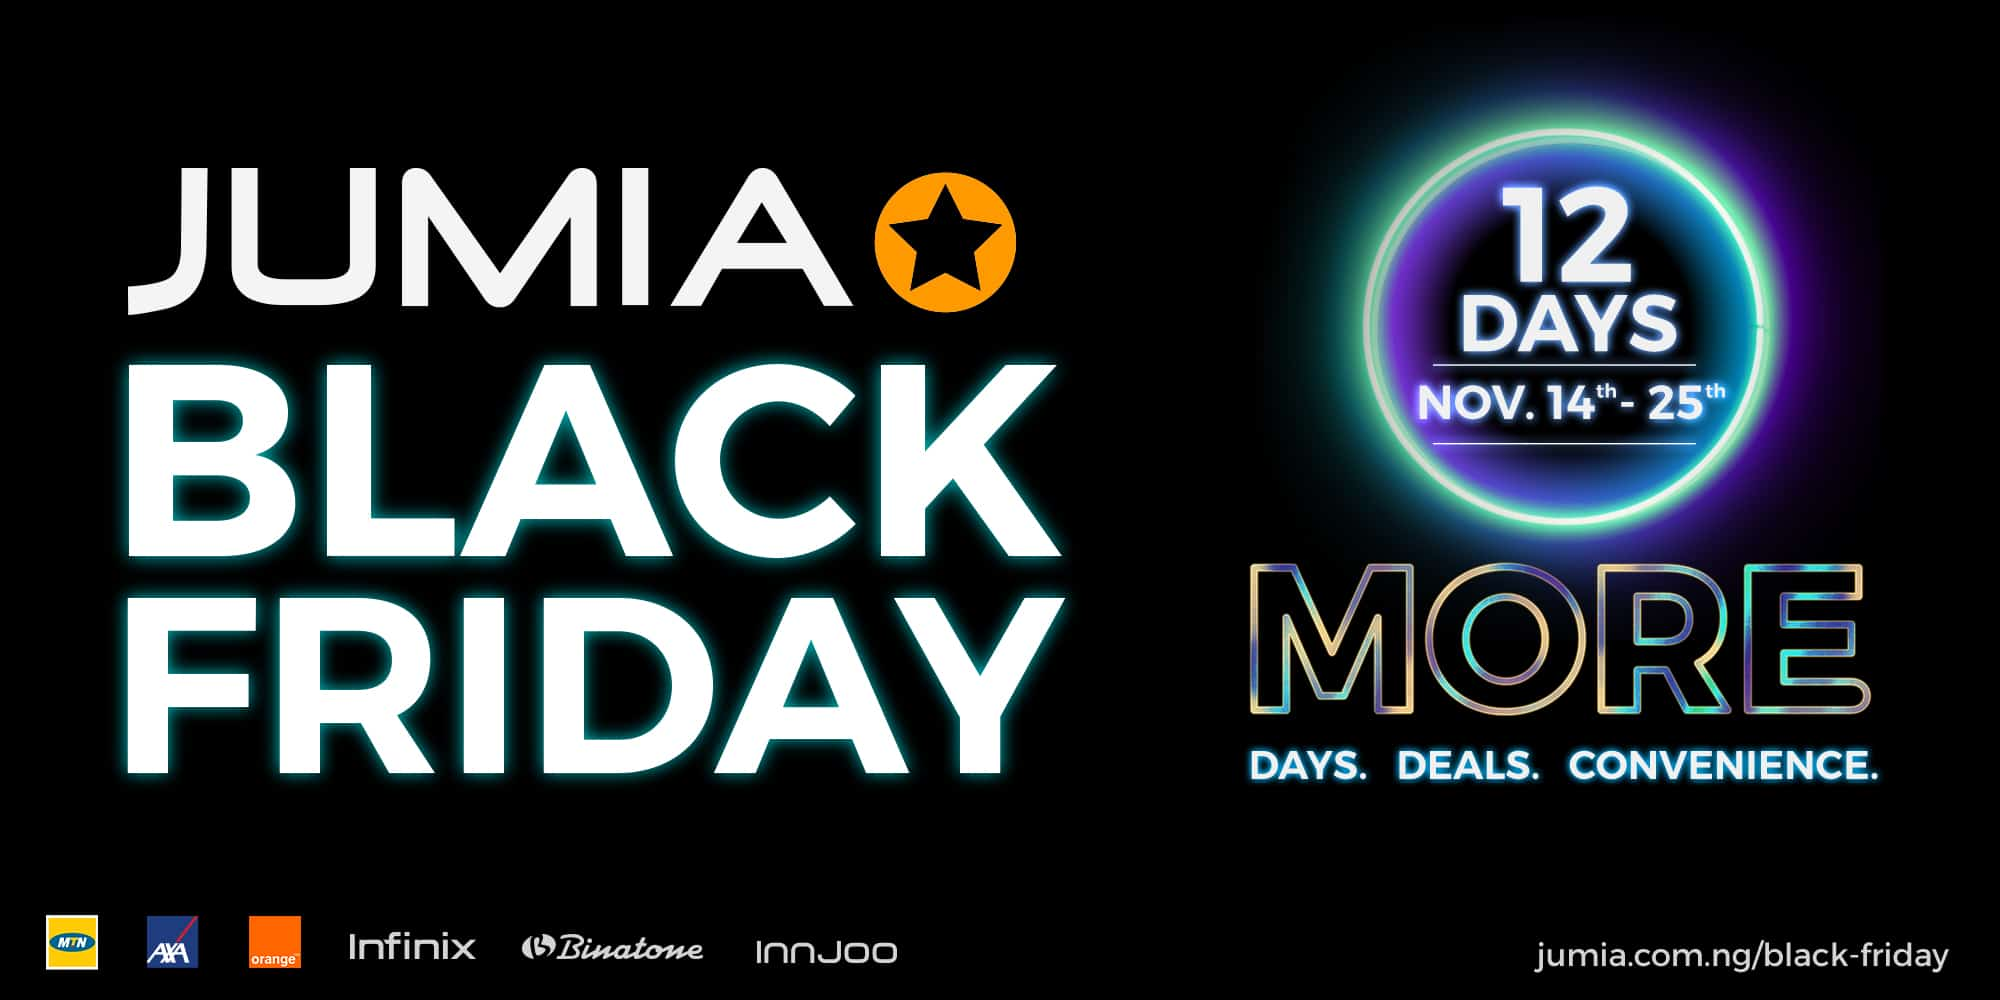 Jumia Launches A 12 Day Black Friday Campaign